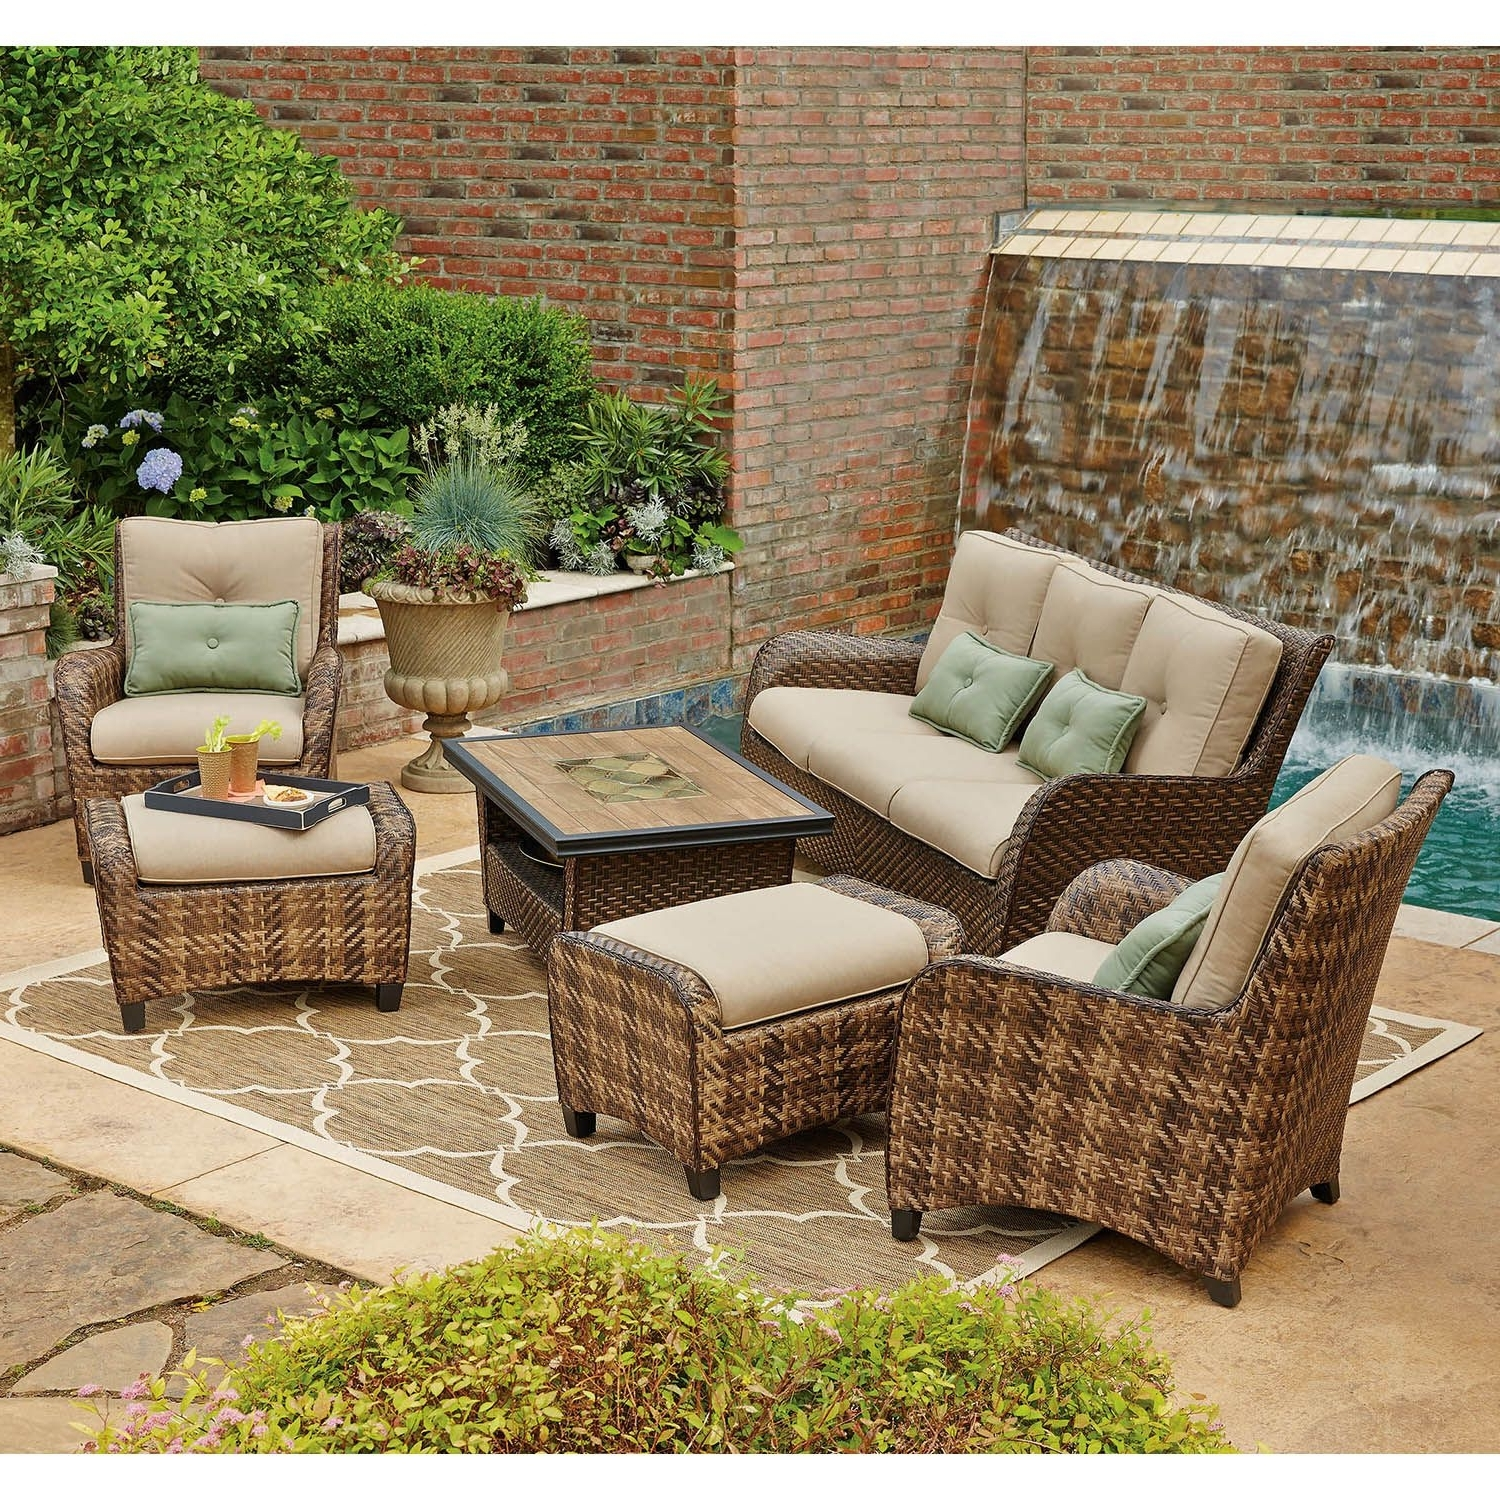 Preferred Patio Conversation Sets At Sam's Club Inside Practical Sam S Club Outdoor Patio Furniture Appealing Replacement (View 15 of 15)